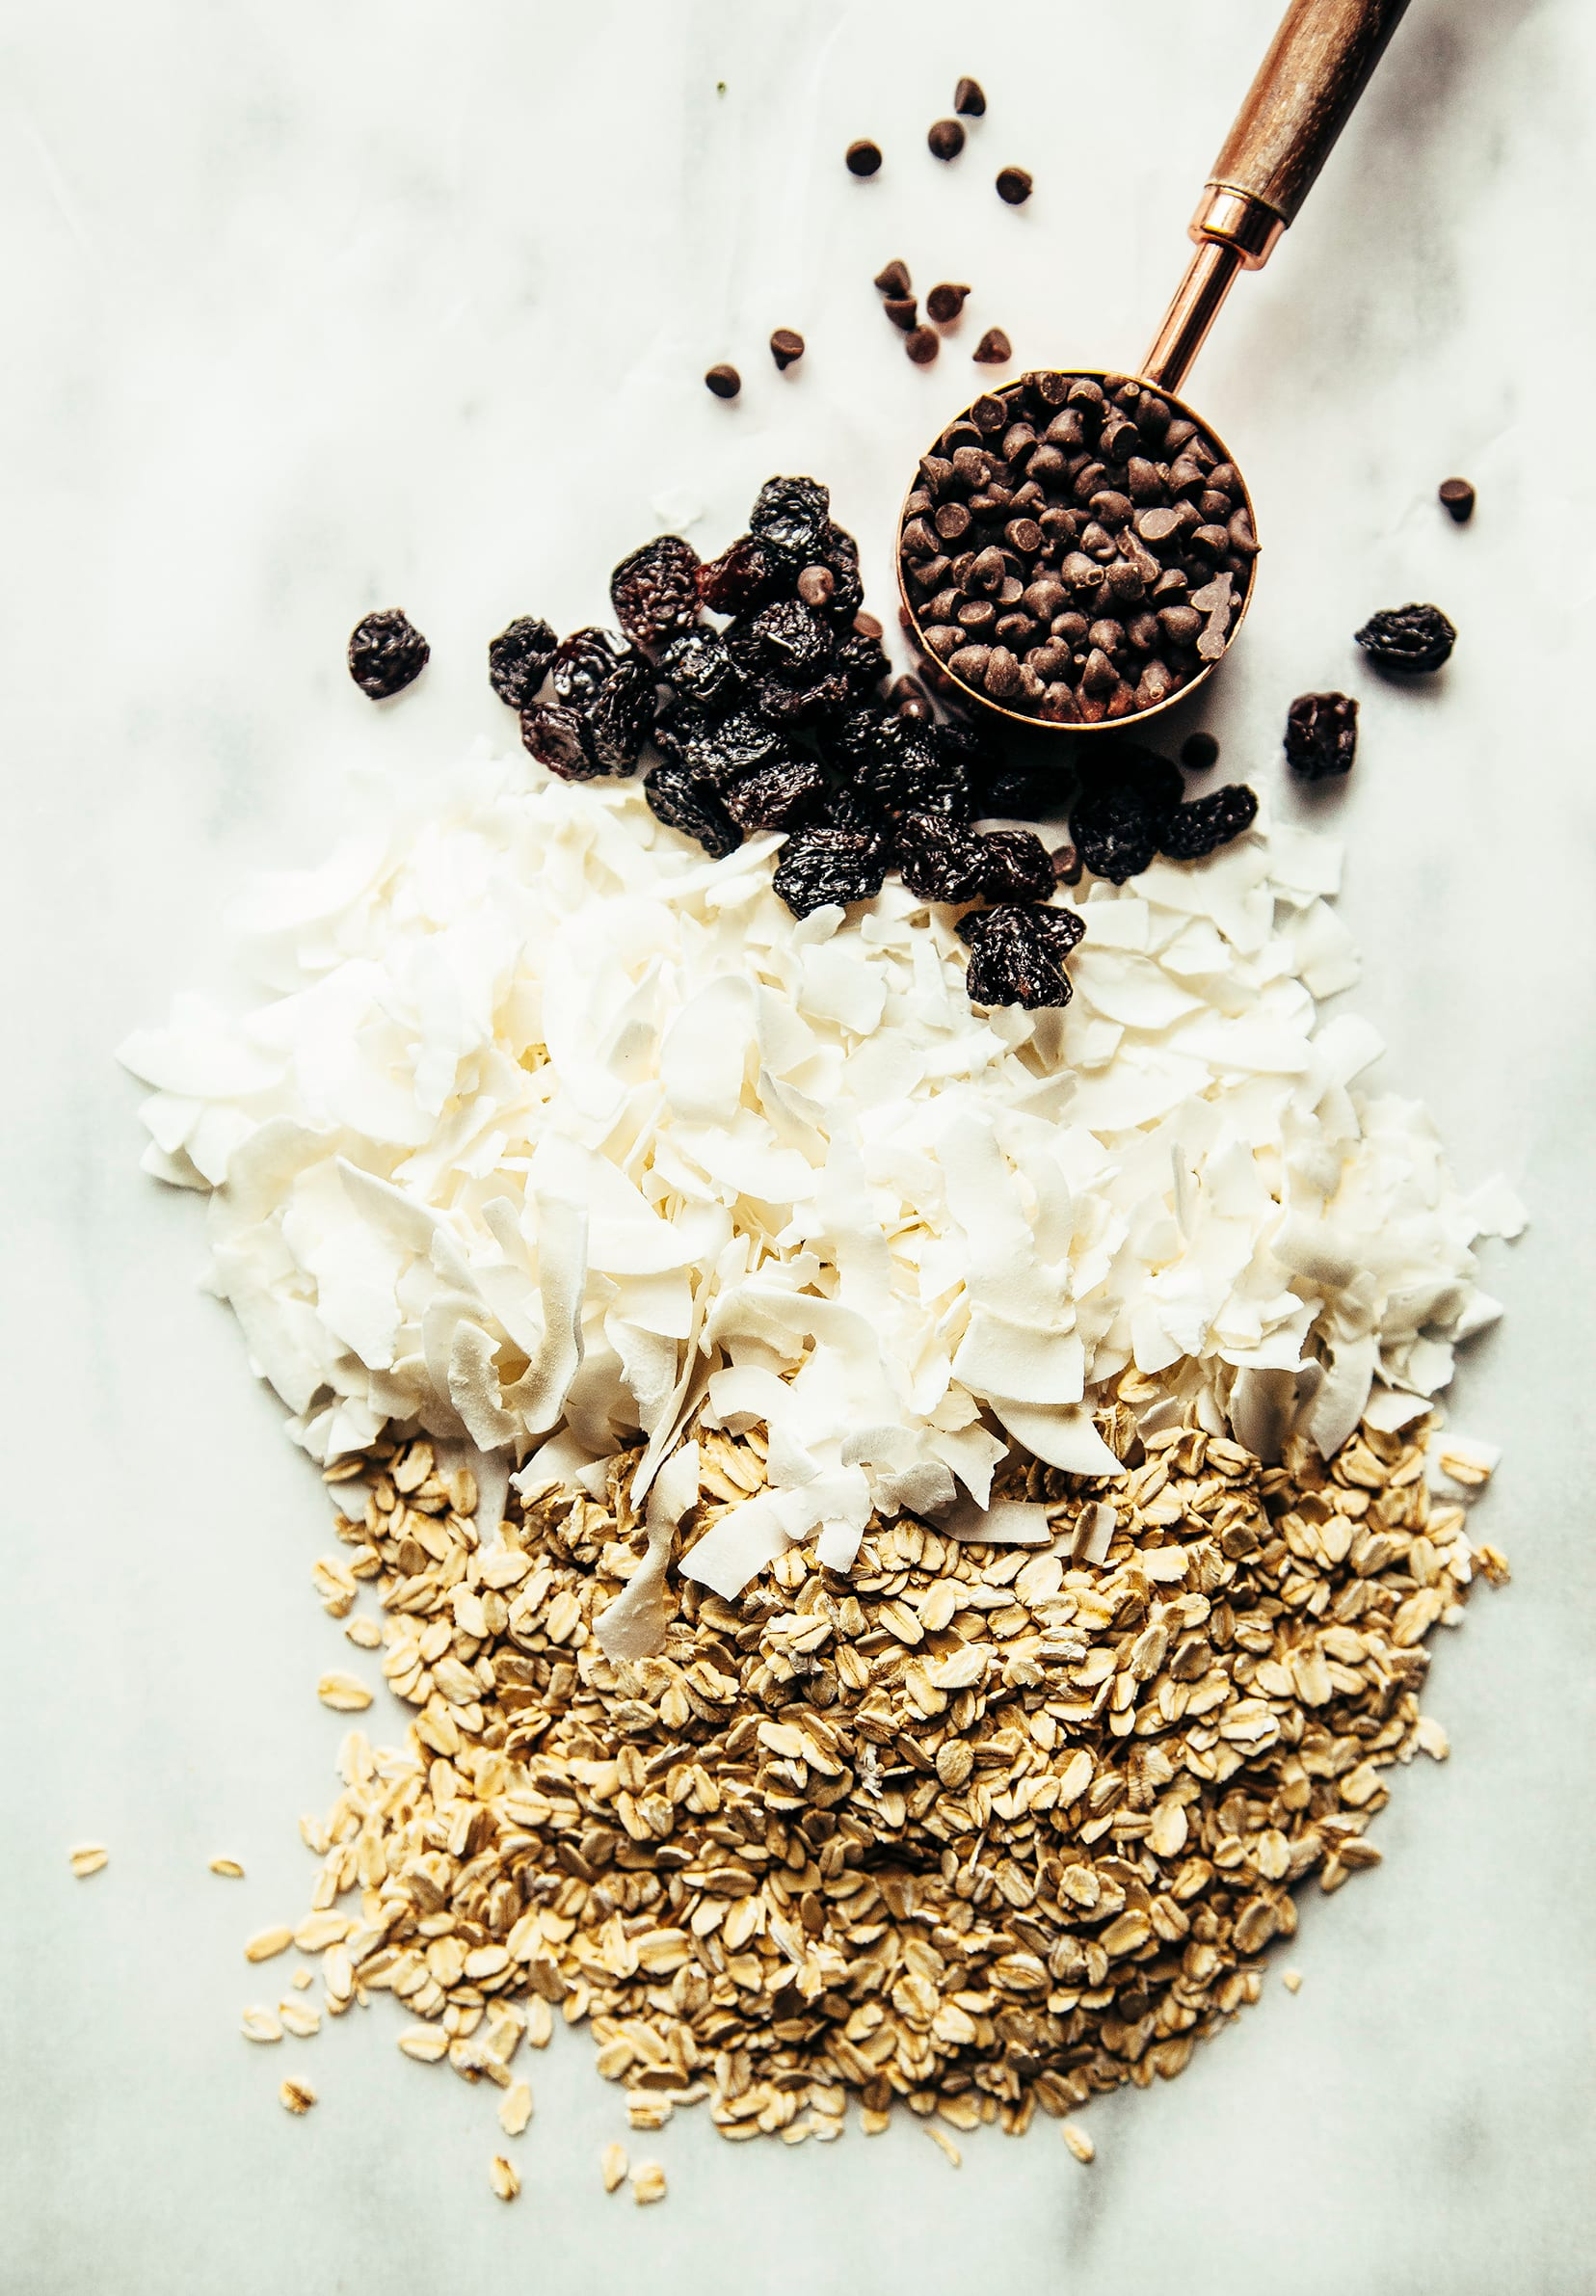 An overhead shot of chocolate chips, coconut flakes, raisins, and rolled oats, all lined up together.